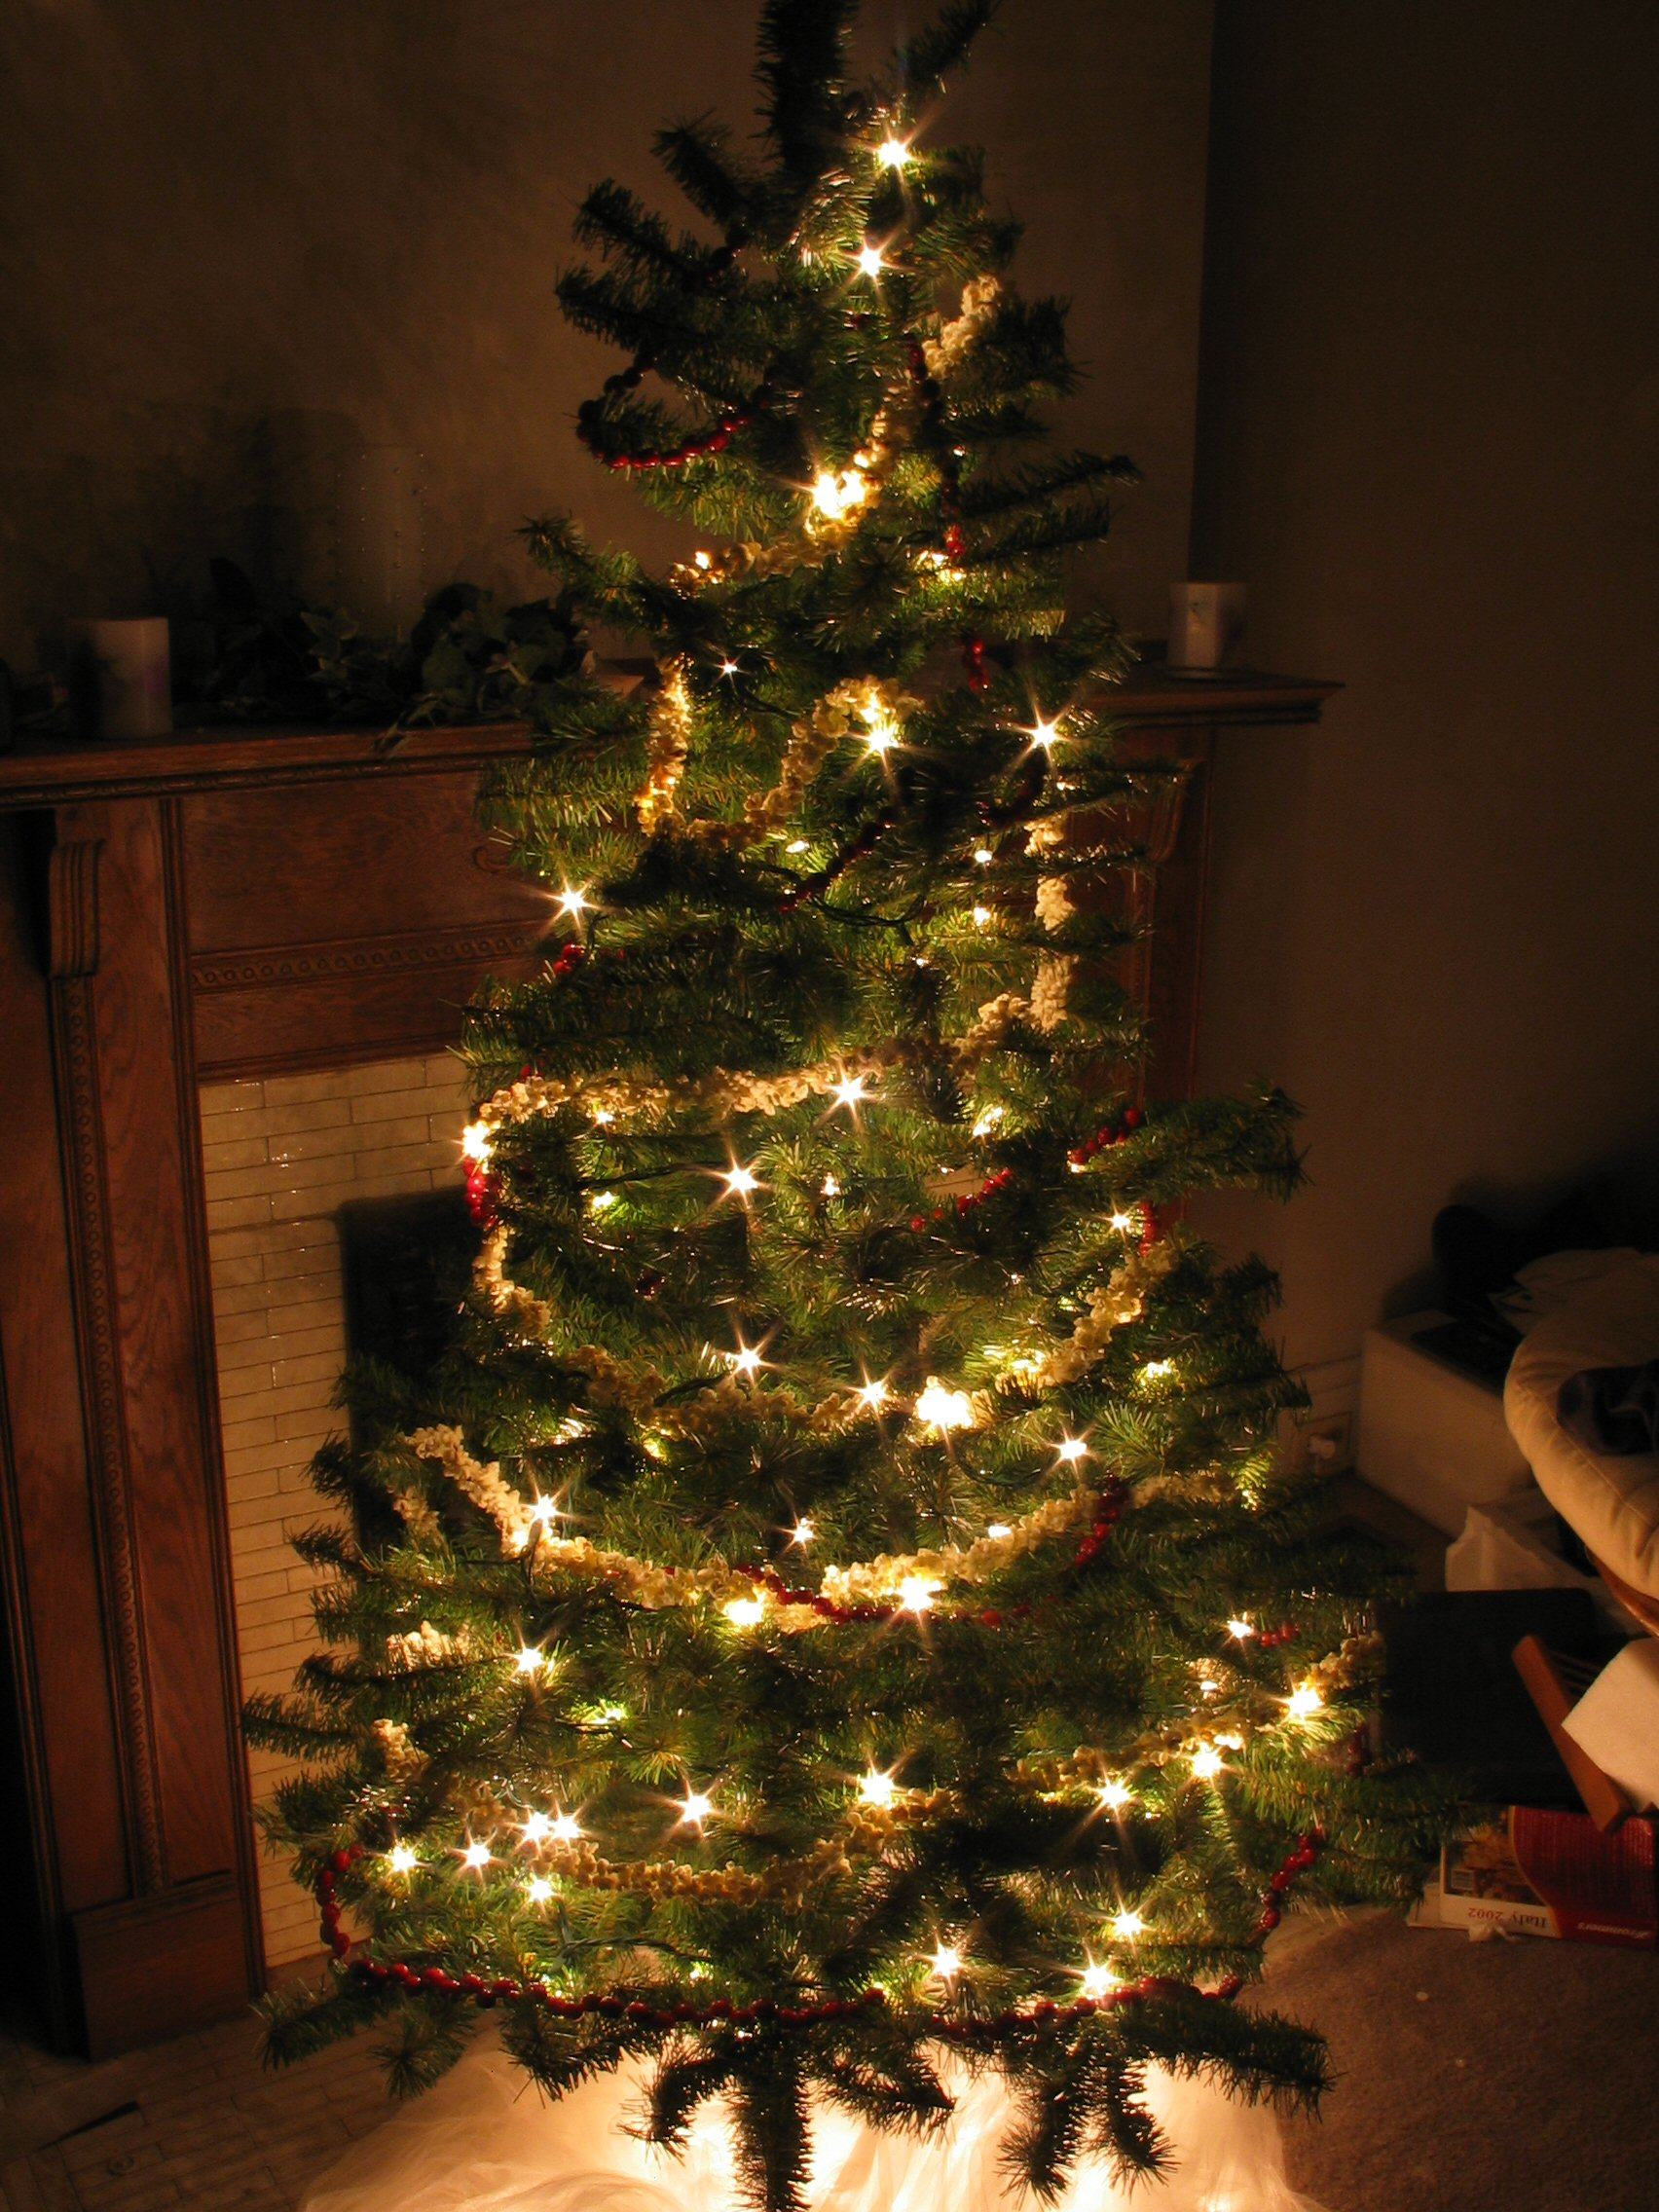 File:Christmas tree at night.jpg